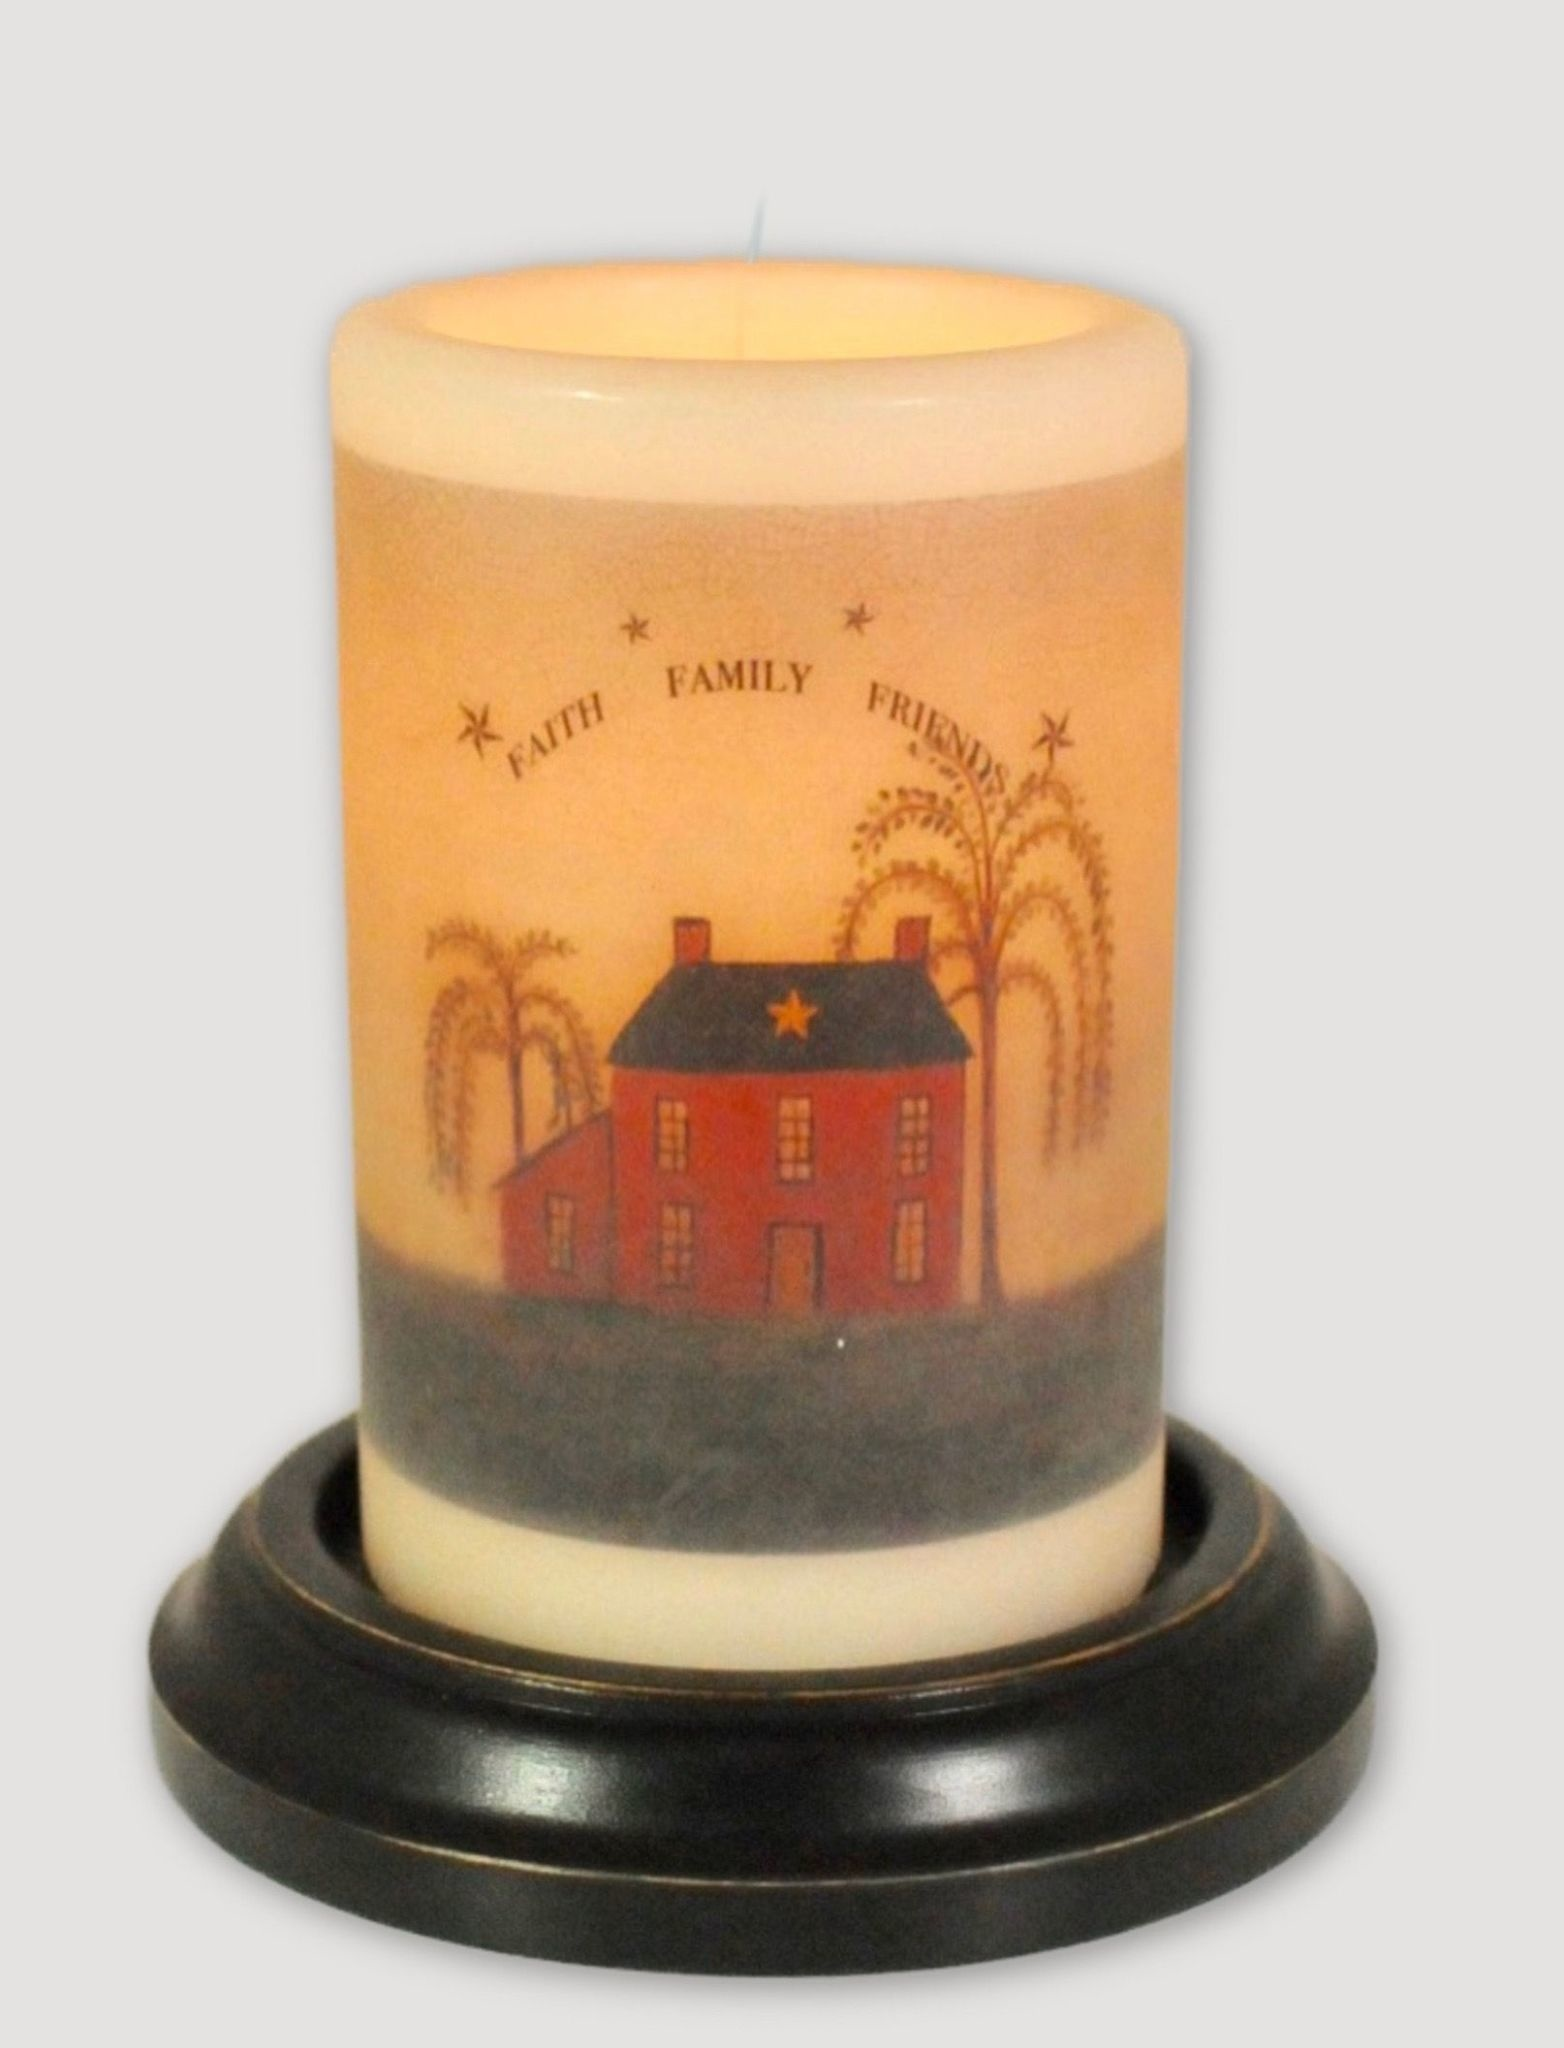 C R Designs Faith, Family, Friends Candle Sleeve Antique Vanilla